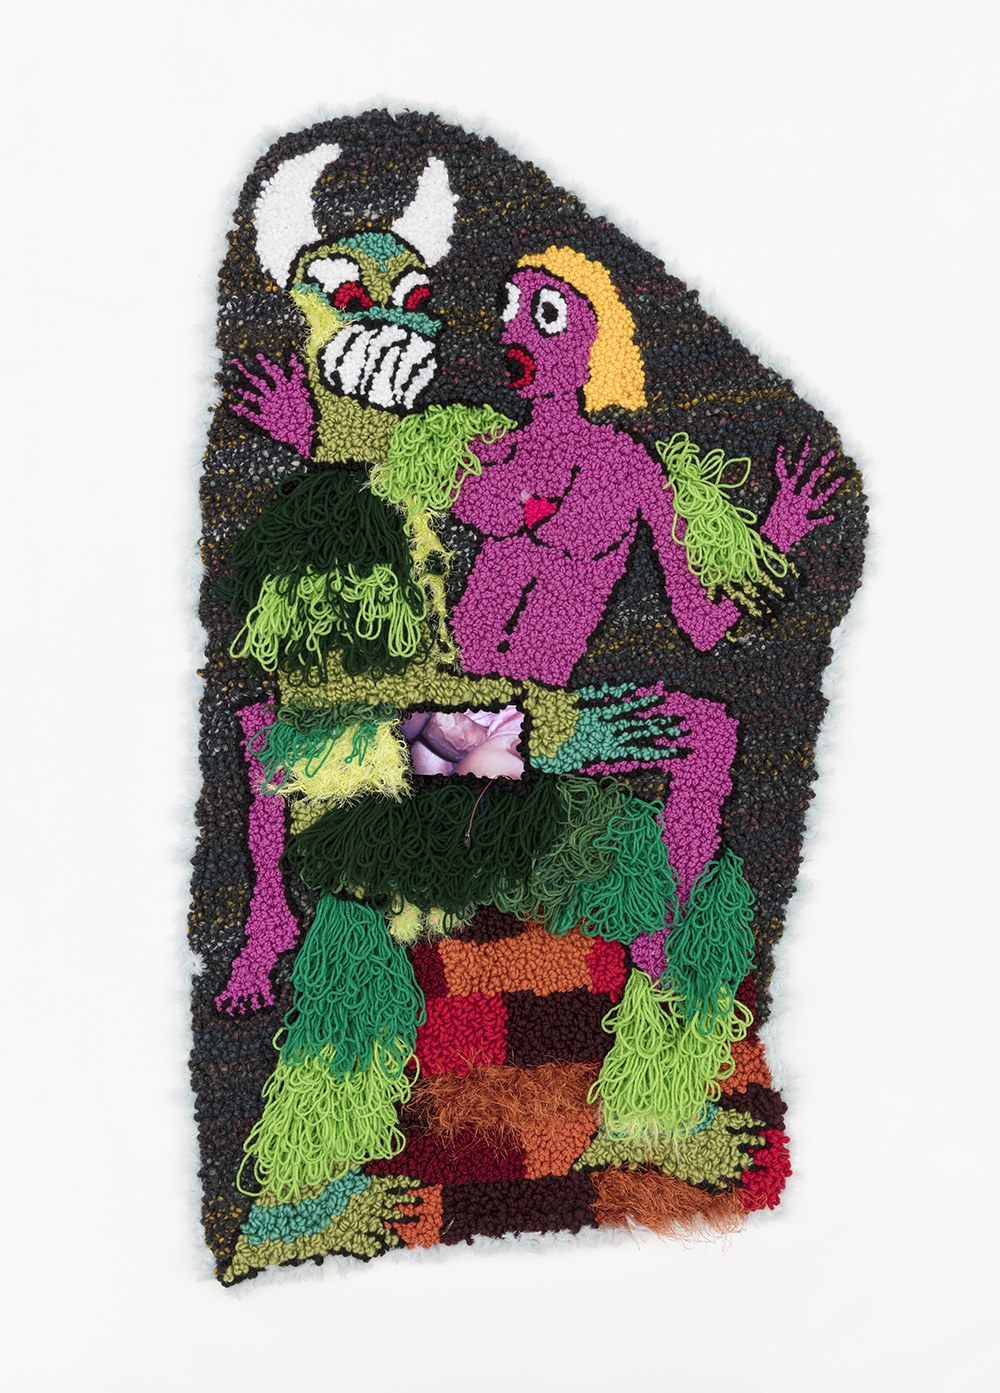 Hannah Epstein. <em>Demon Daddy Fuck Fantasy</em>, 2019. Wool, acrylic, polyester, burlap and video, 52 1/2 x 31 1/2 inches  (133.4 x 80 cm)